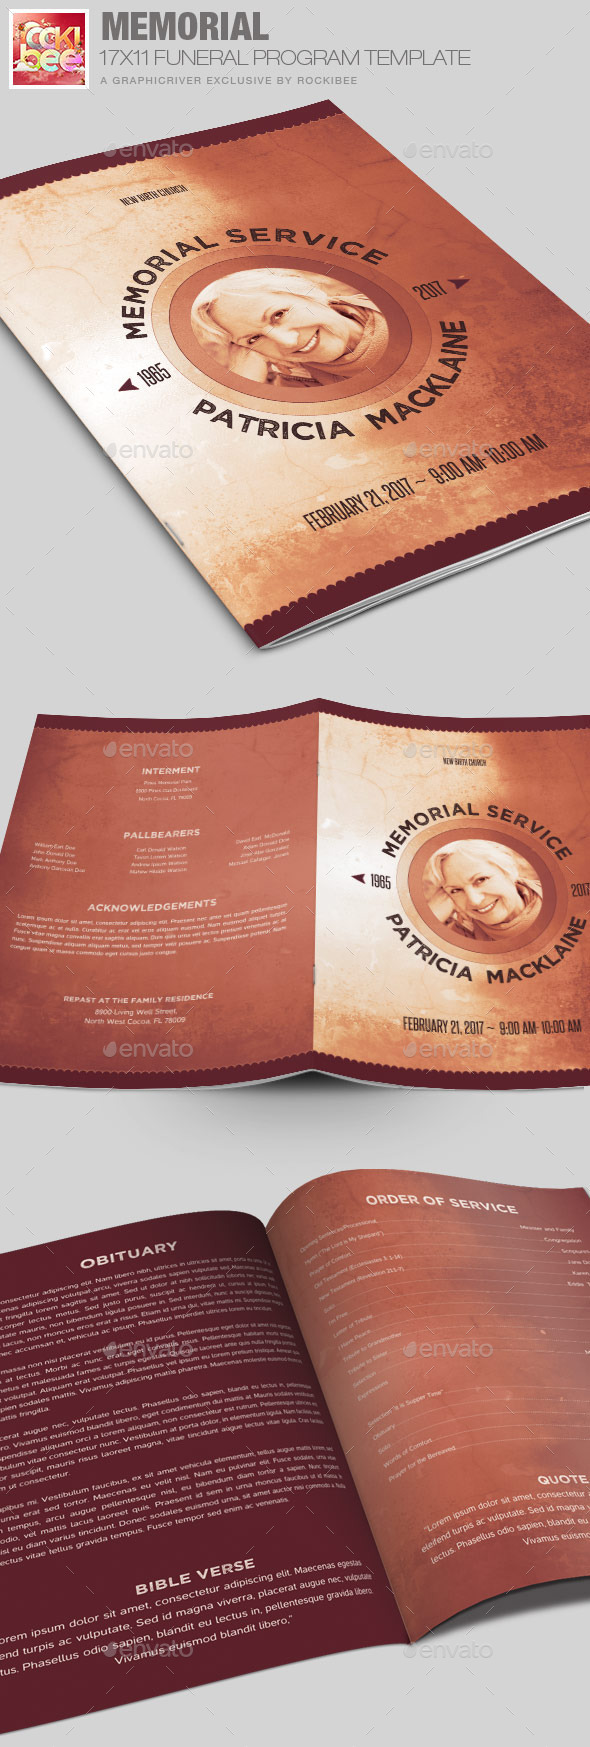 Memorial Funeral Program Template - Informational Brochures